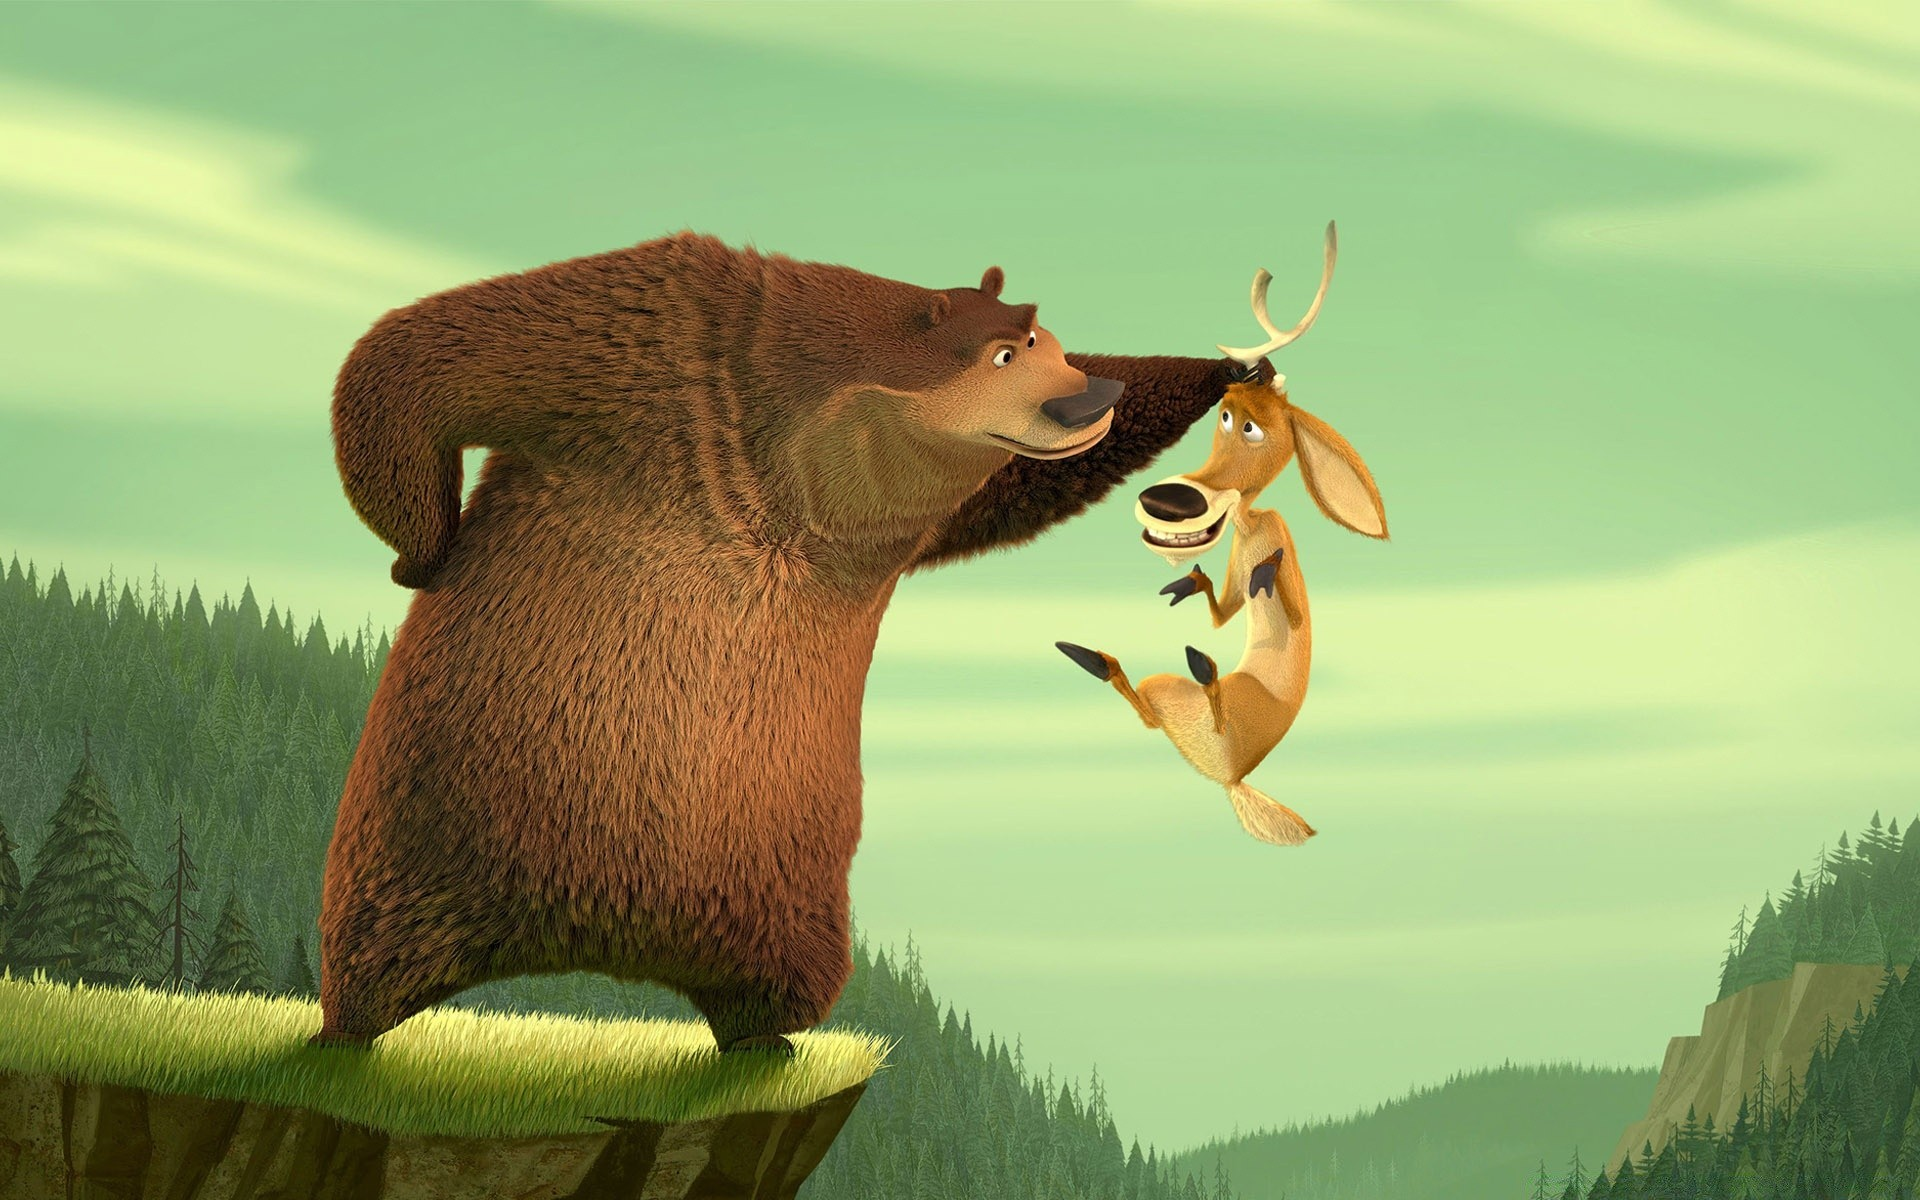 Martin Lawrence As Boog The Grizzly Bear And Ashton Kutcher As